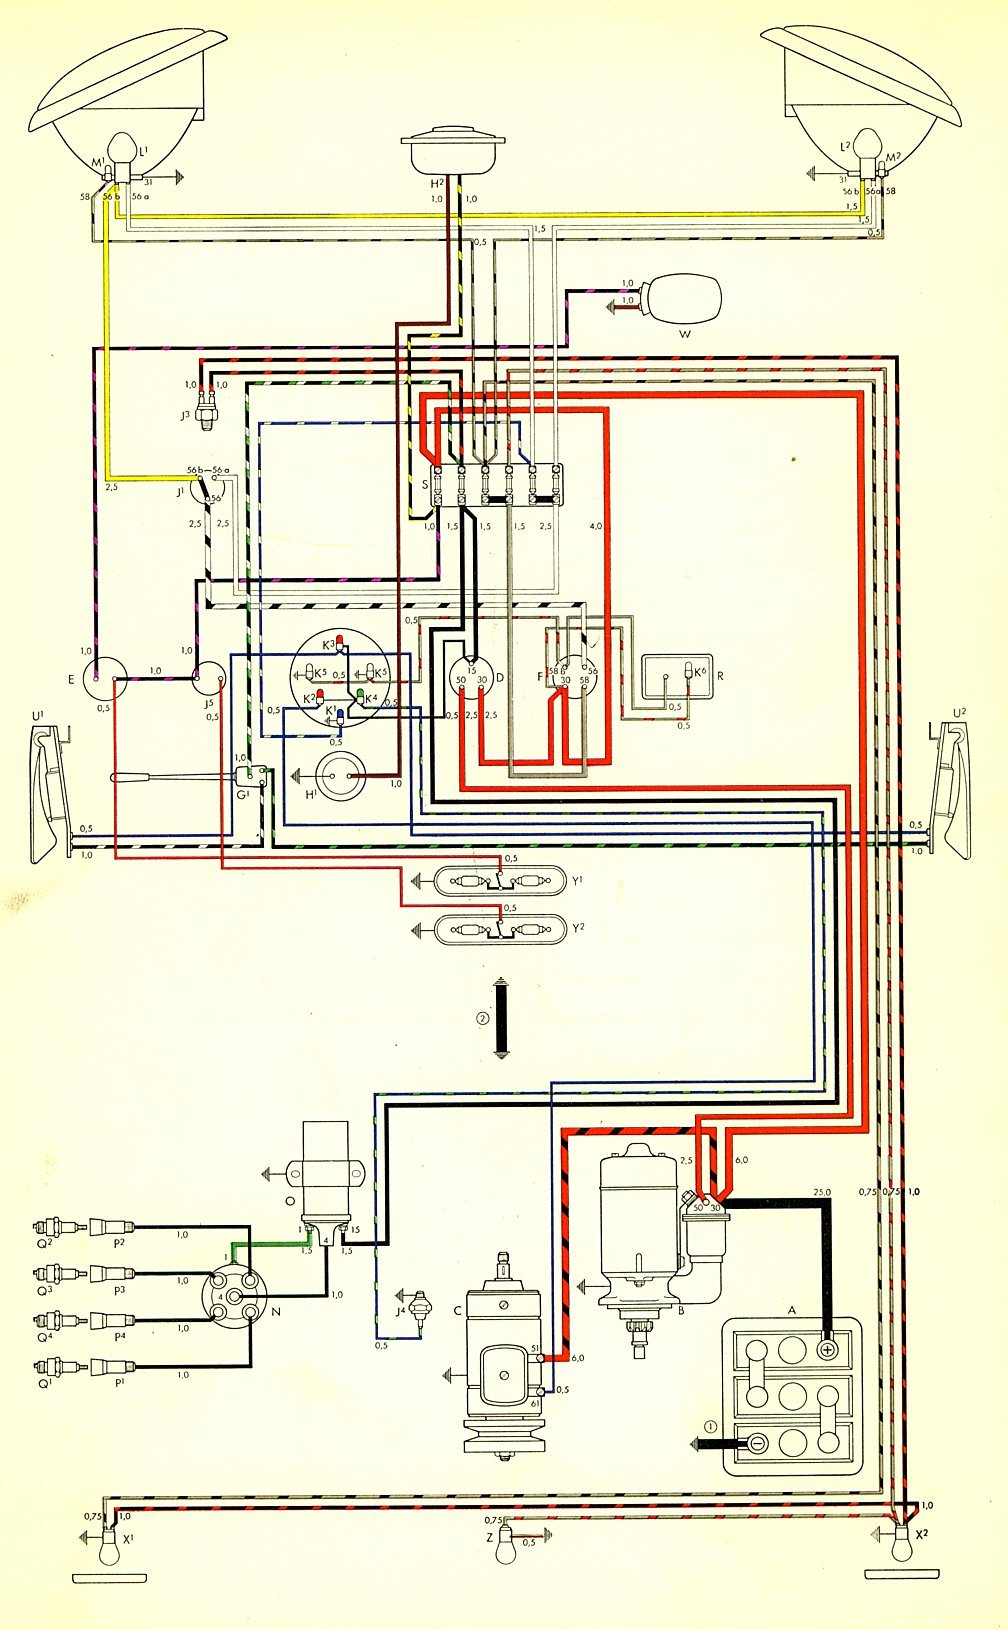 thesamba.com :: type 2 wiring diagrams 1979 dodge van wiring diagram wire diagram 1979 vw van #4